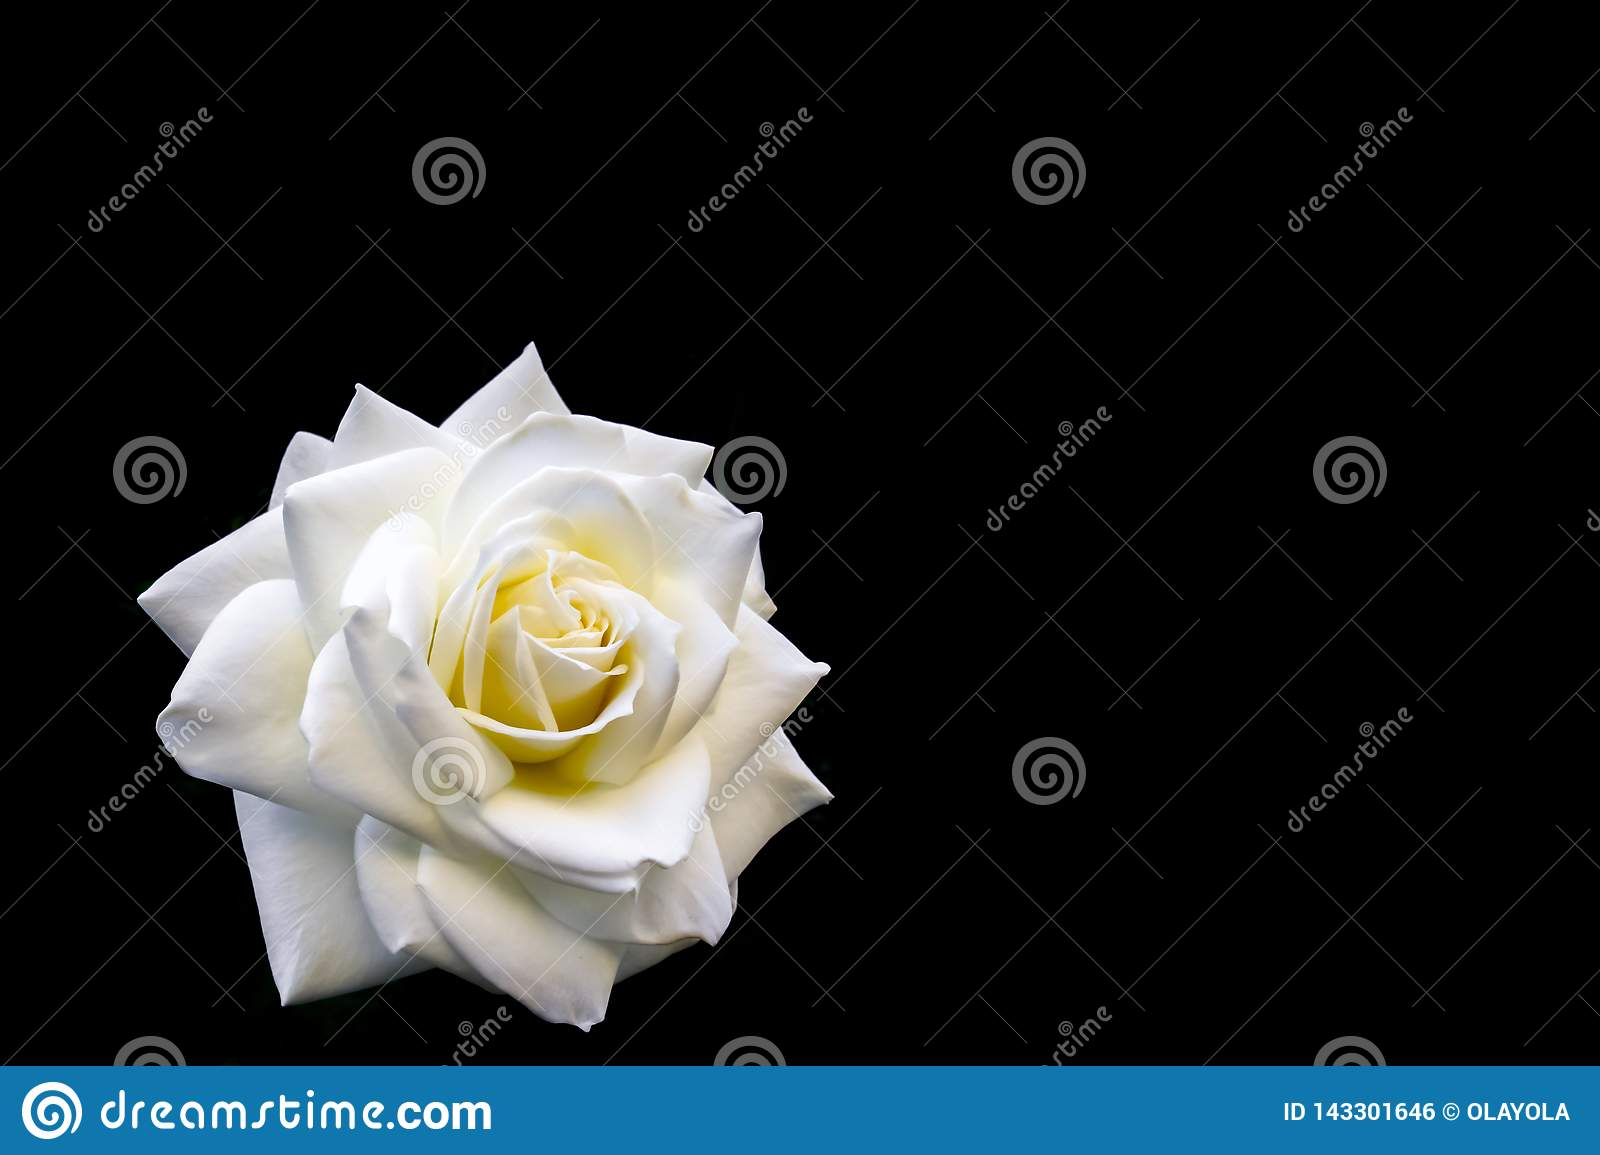 Beautiful white rose isolated on black background. Ideal for greeting cards for wedding, birthday, Valentine`s Day, Mother`s Day